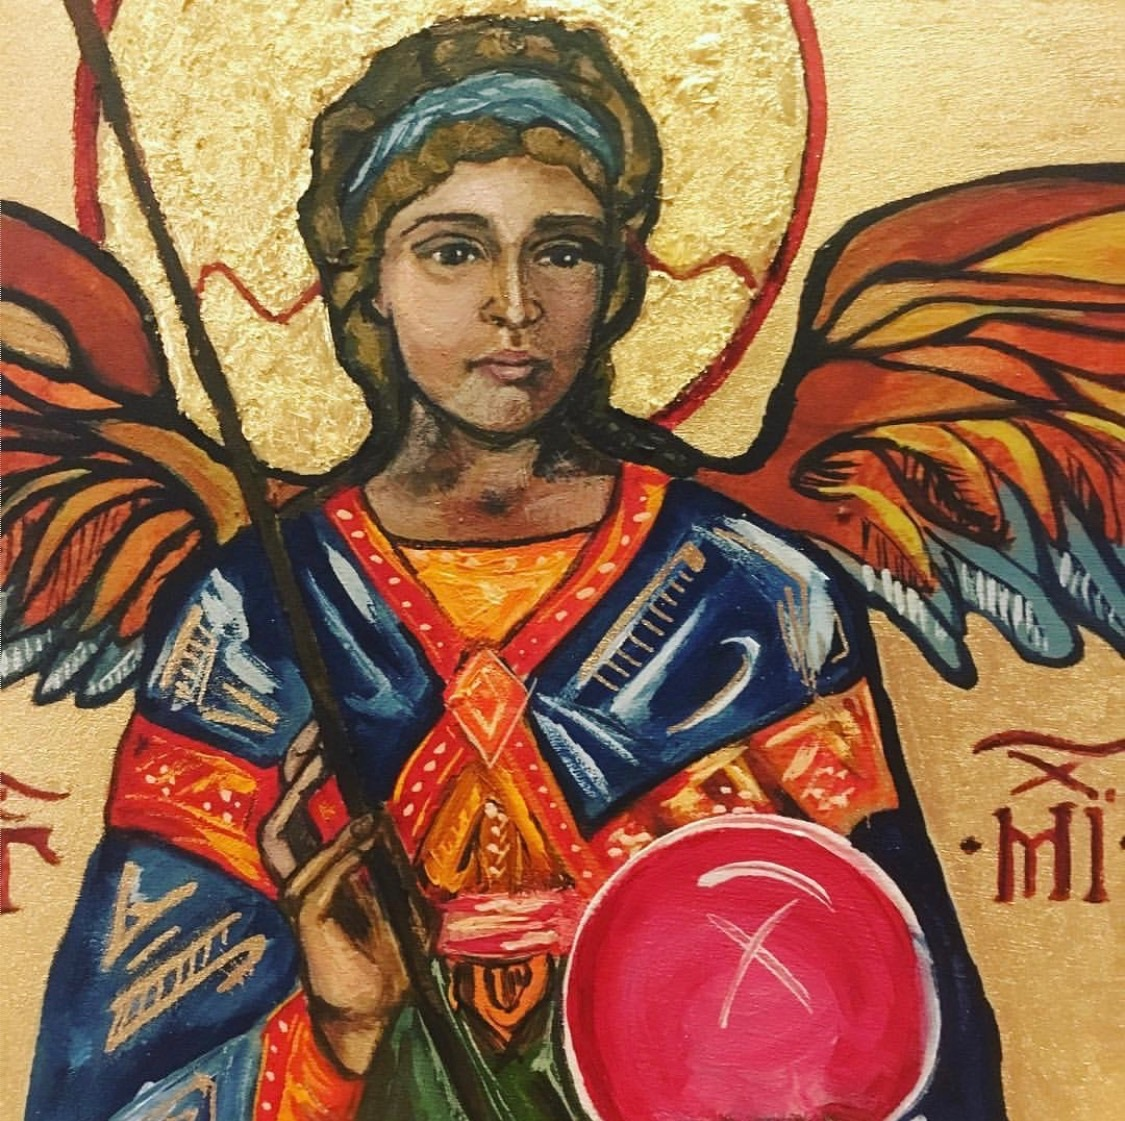 St Michael the Archangel, Catholic art, Holy art, religious images,